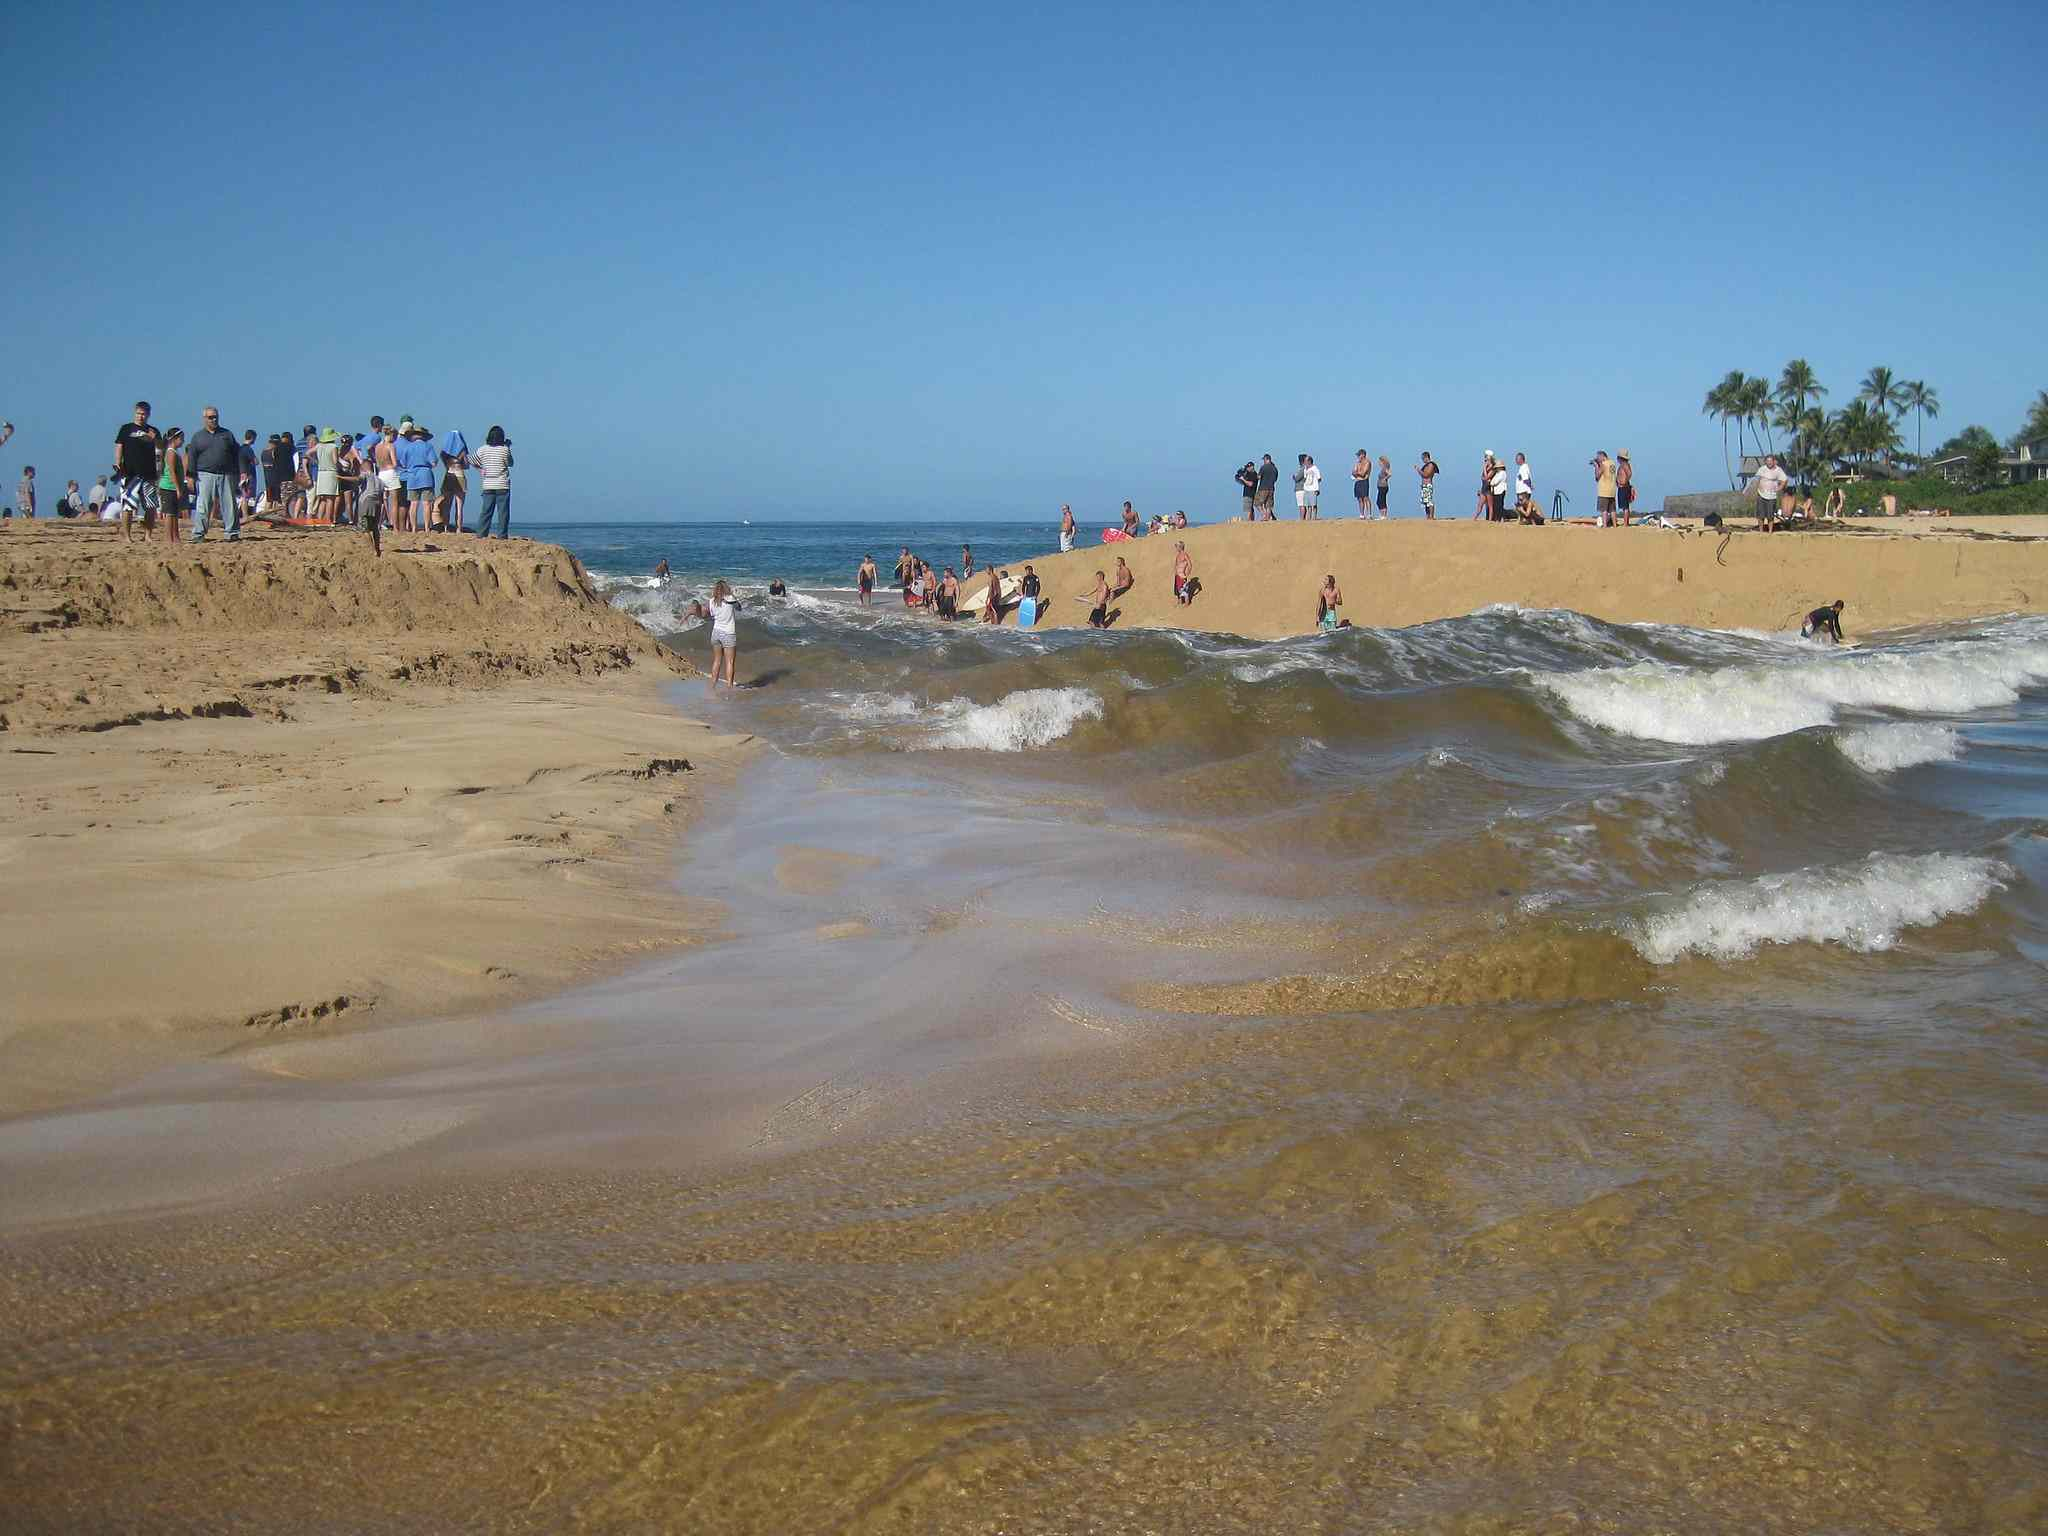 Waves breaking through the mouth of the Waimea River with sand dunes on both sides of the waves packed with observers watching a few surfers in the water under a bright blue sky